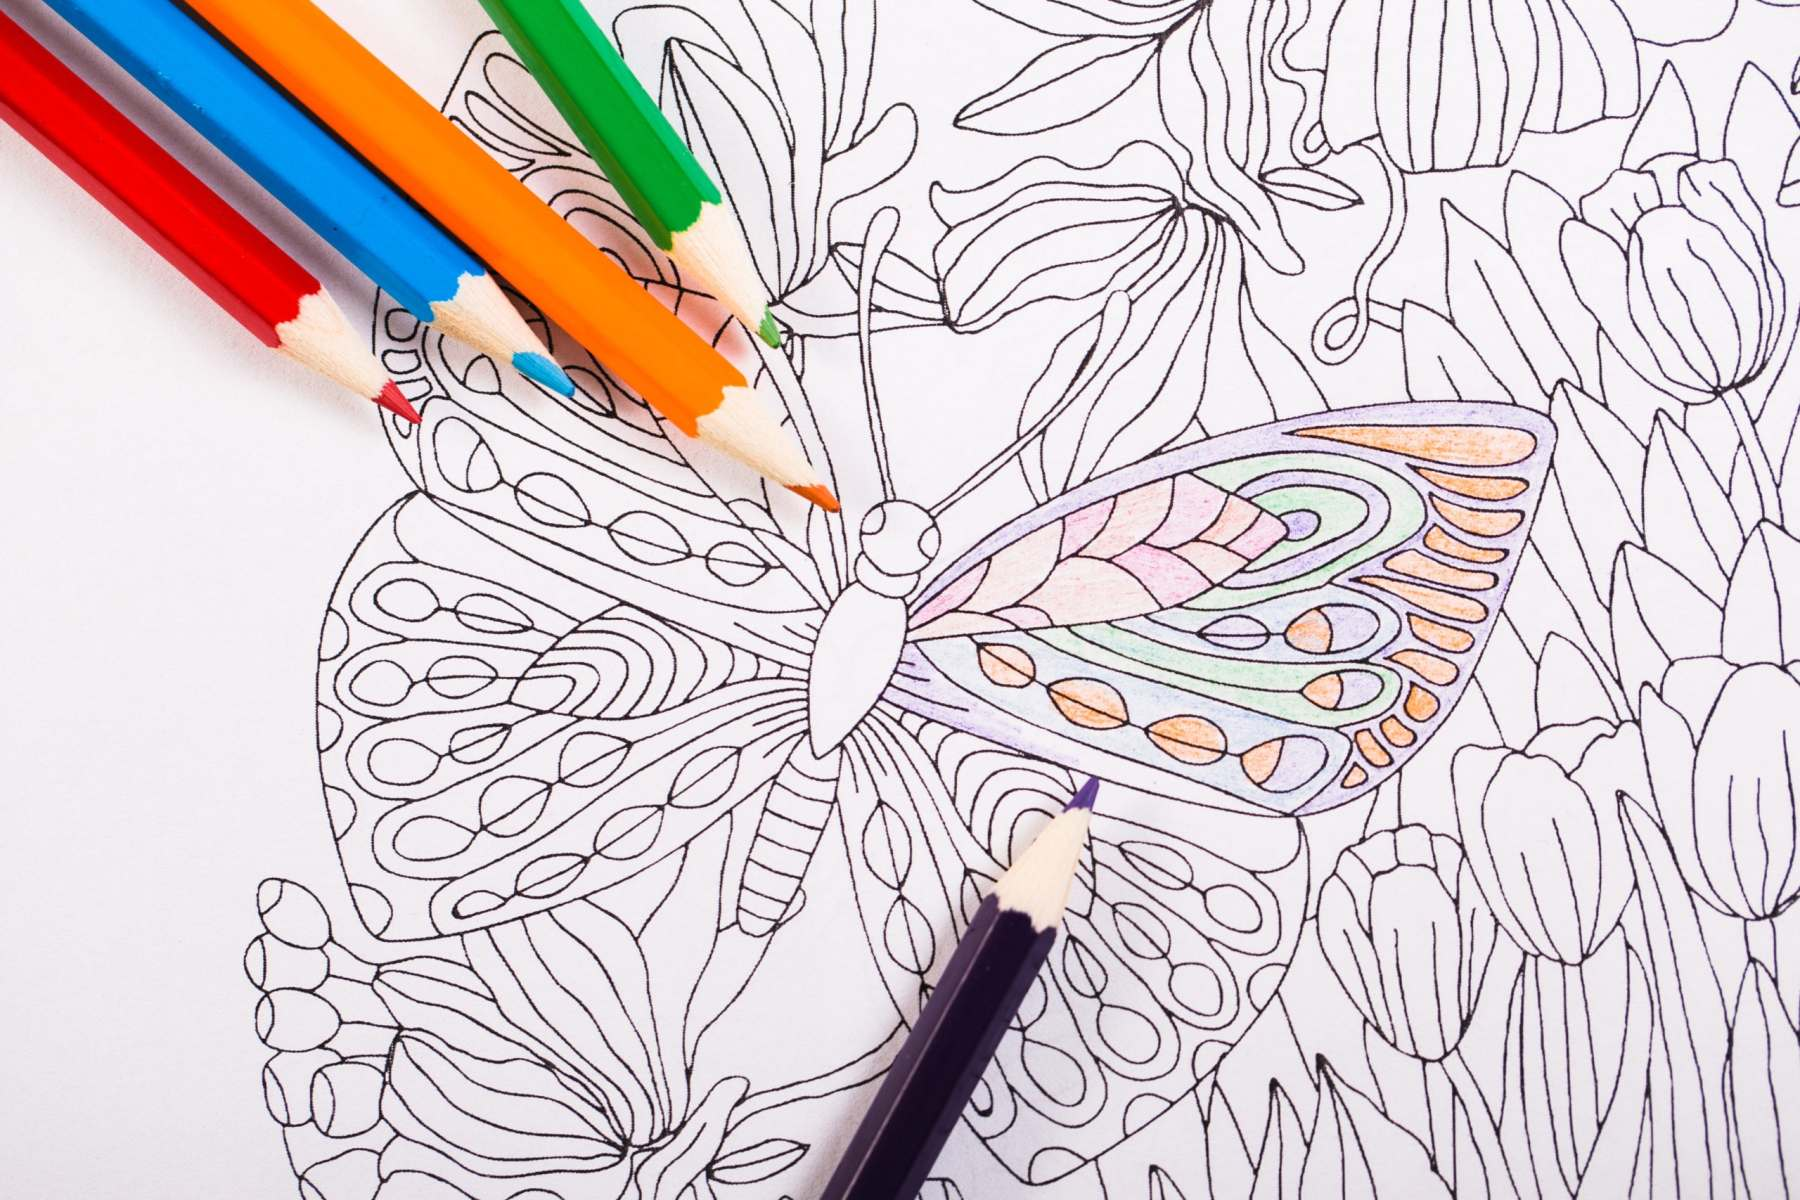 Colouring-in - Shutterstock